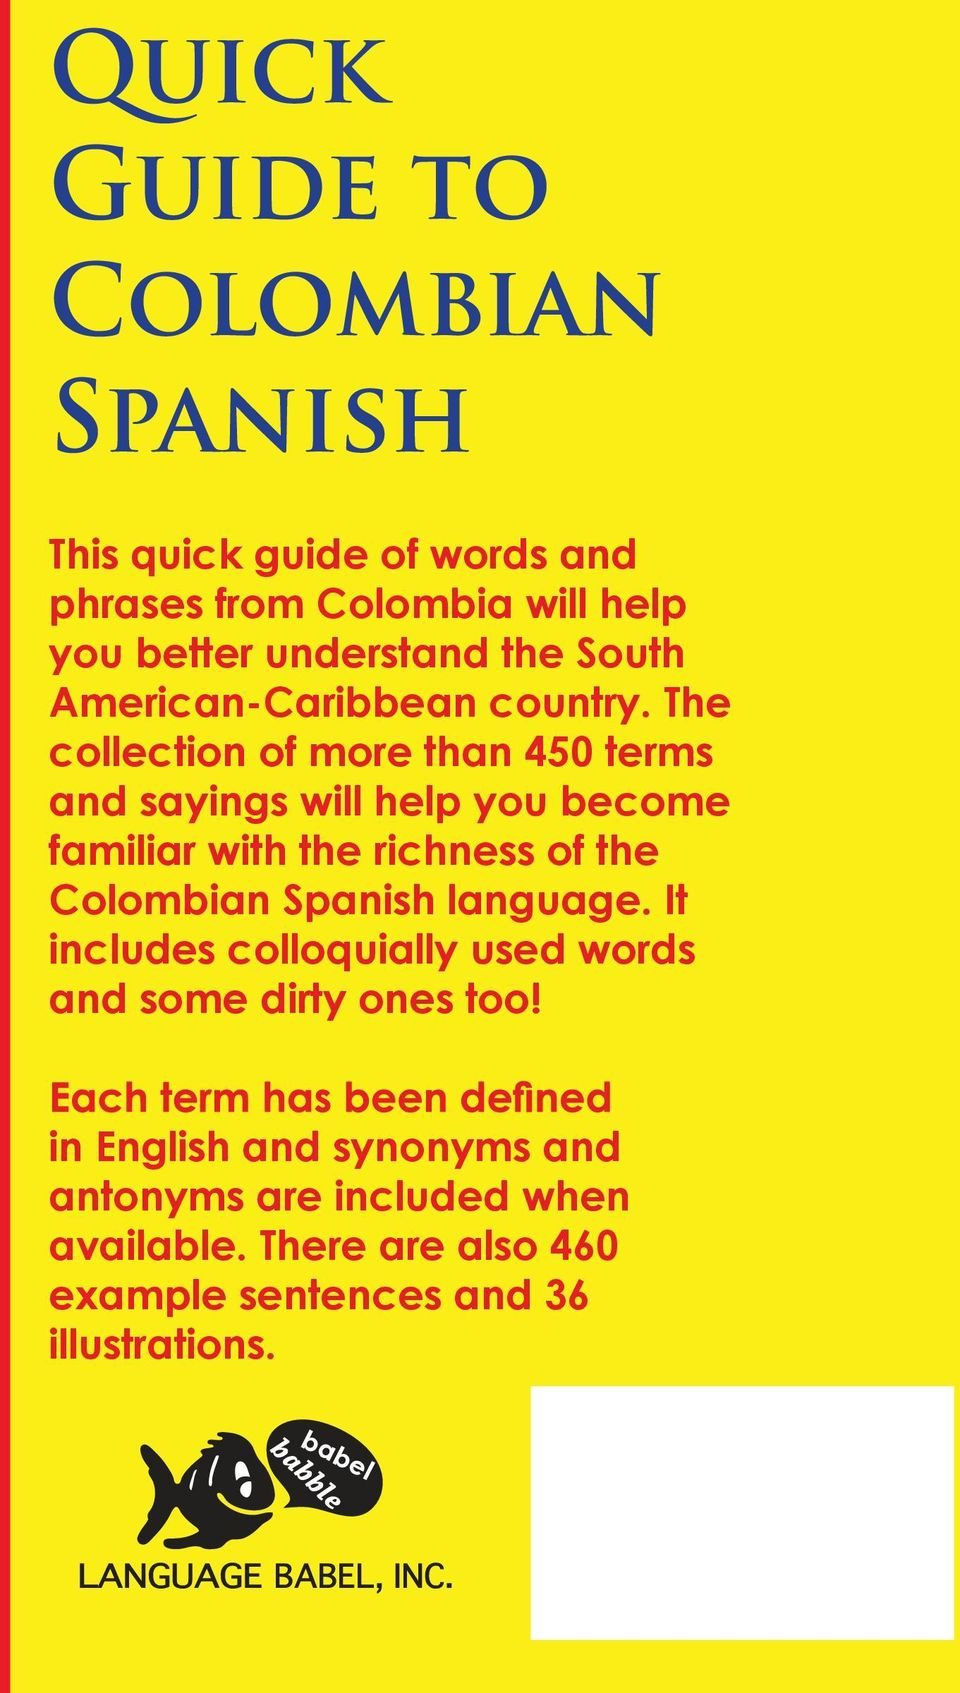 The collection of more than 450 terms and sayings will help you become familiar with the richness of the Colombian Spanish